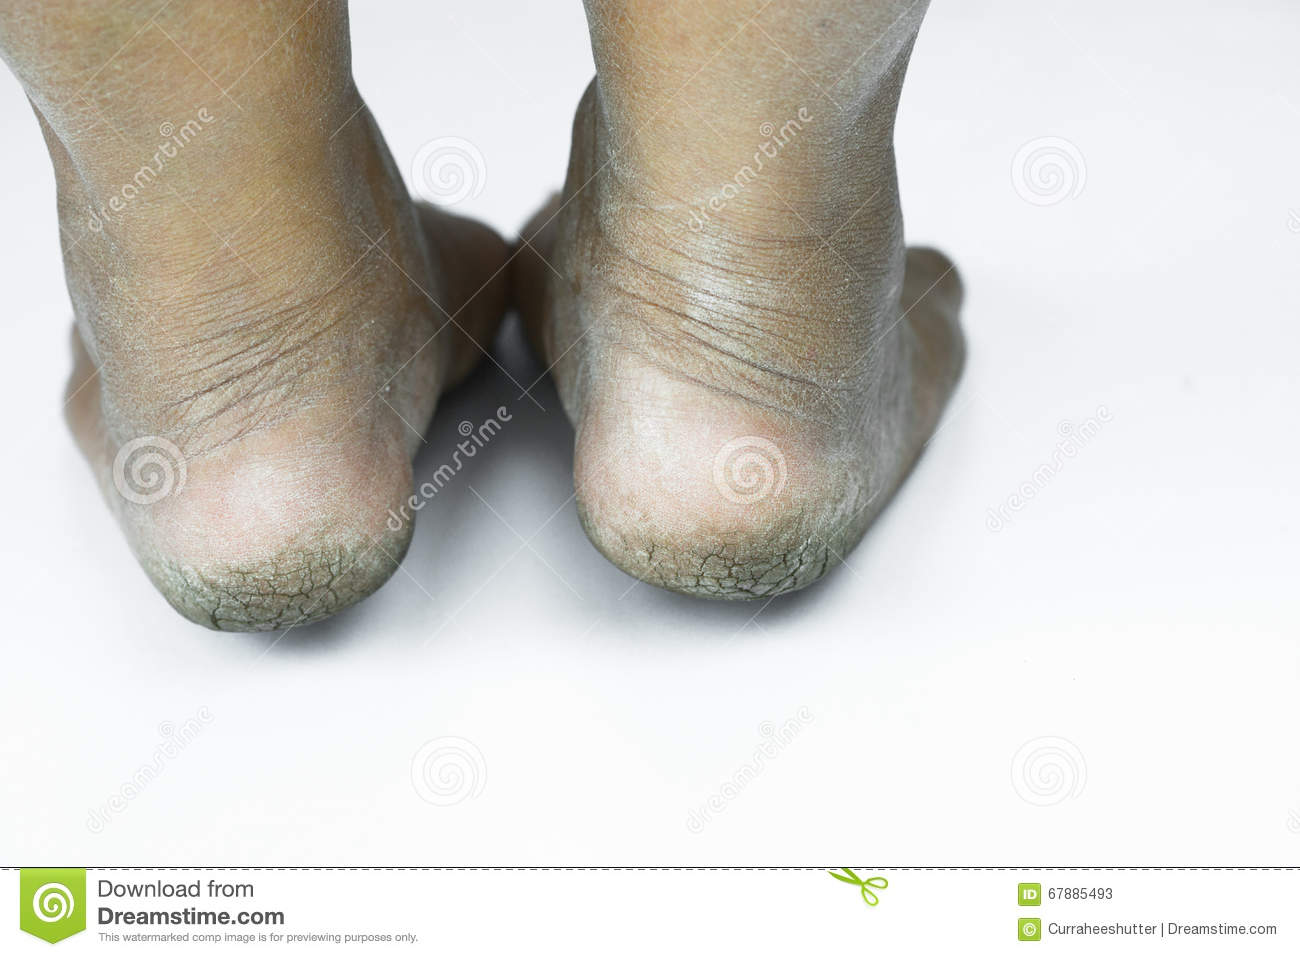 Dirty Foot Ored Heels Isolate On White Background Medical Or Feet Health Of The